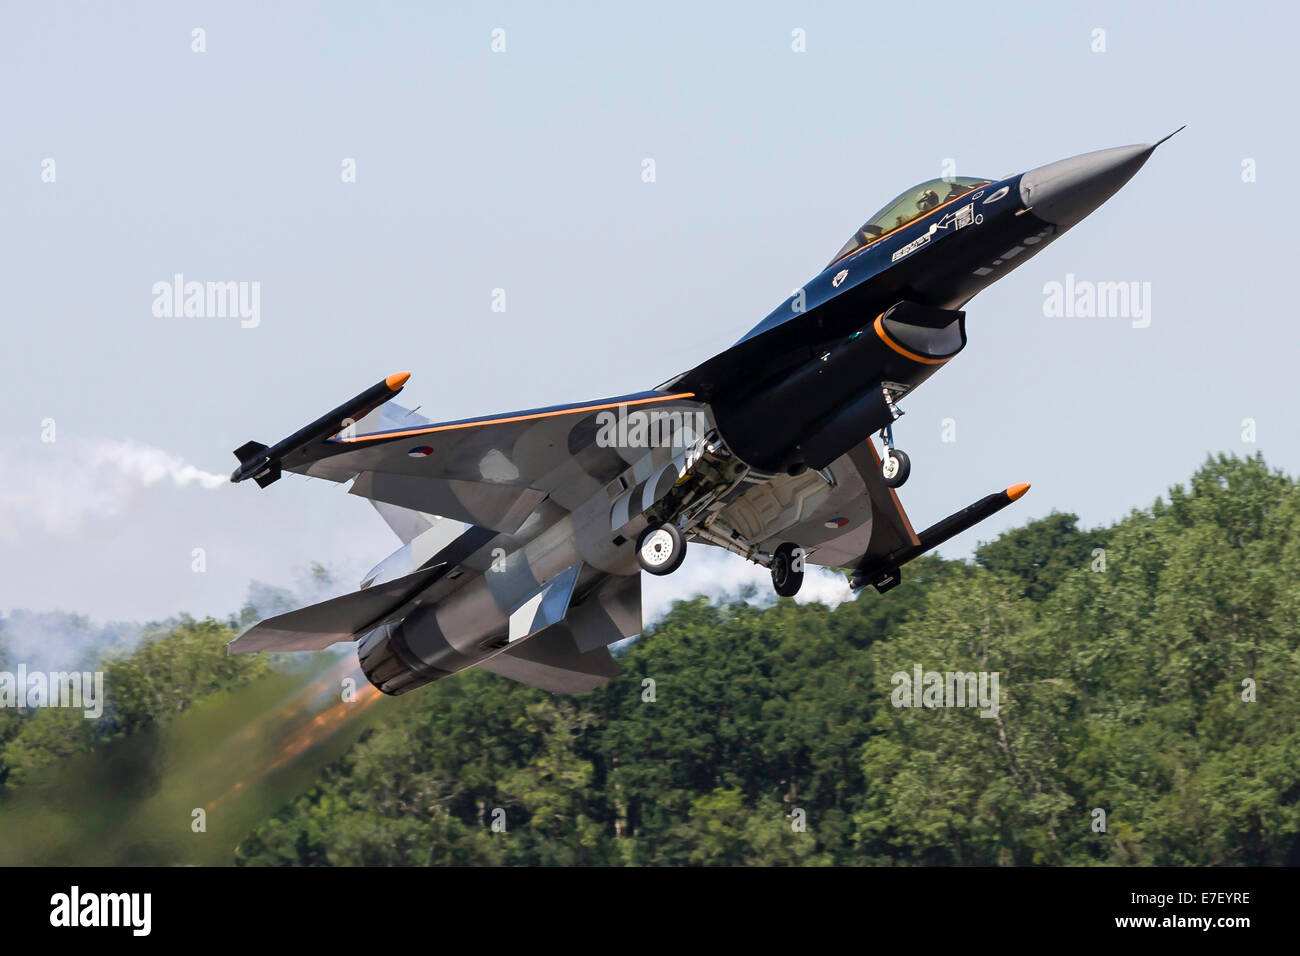 A Royal Netherlands Air Force F-16AM takes off at RAF Fairford, England. Stock Photo